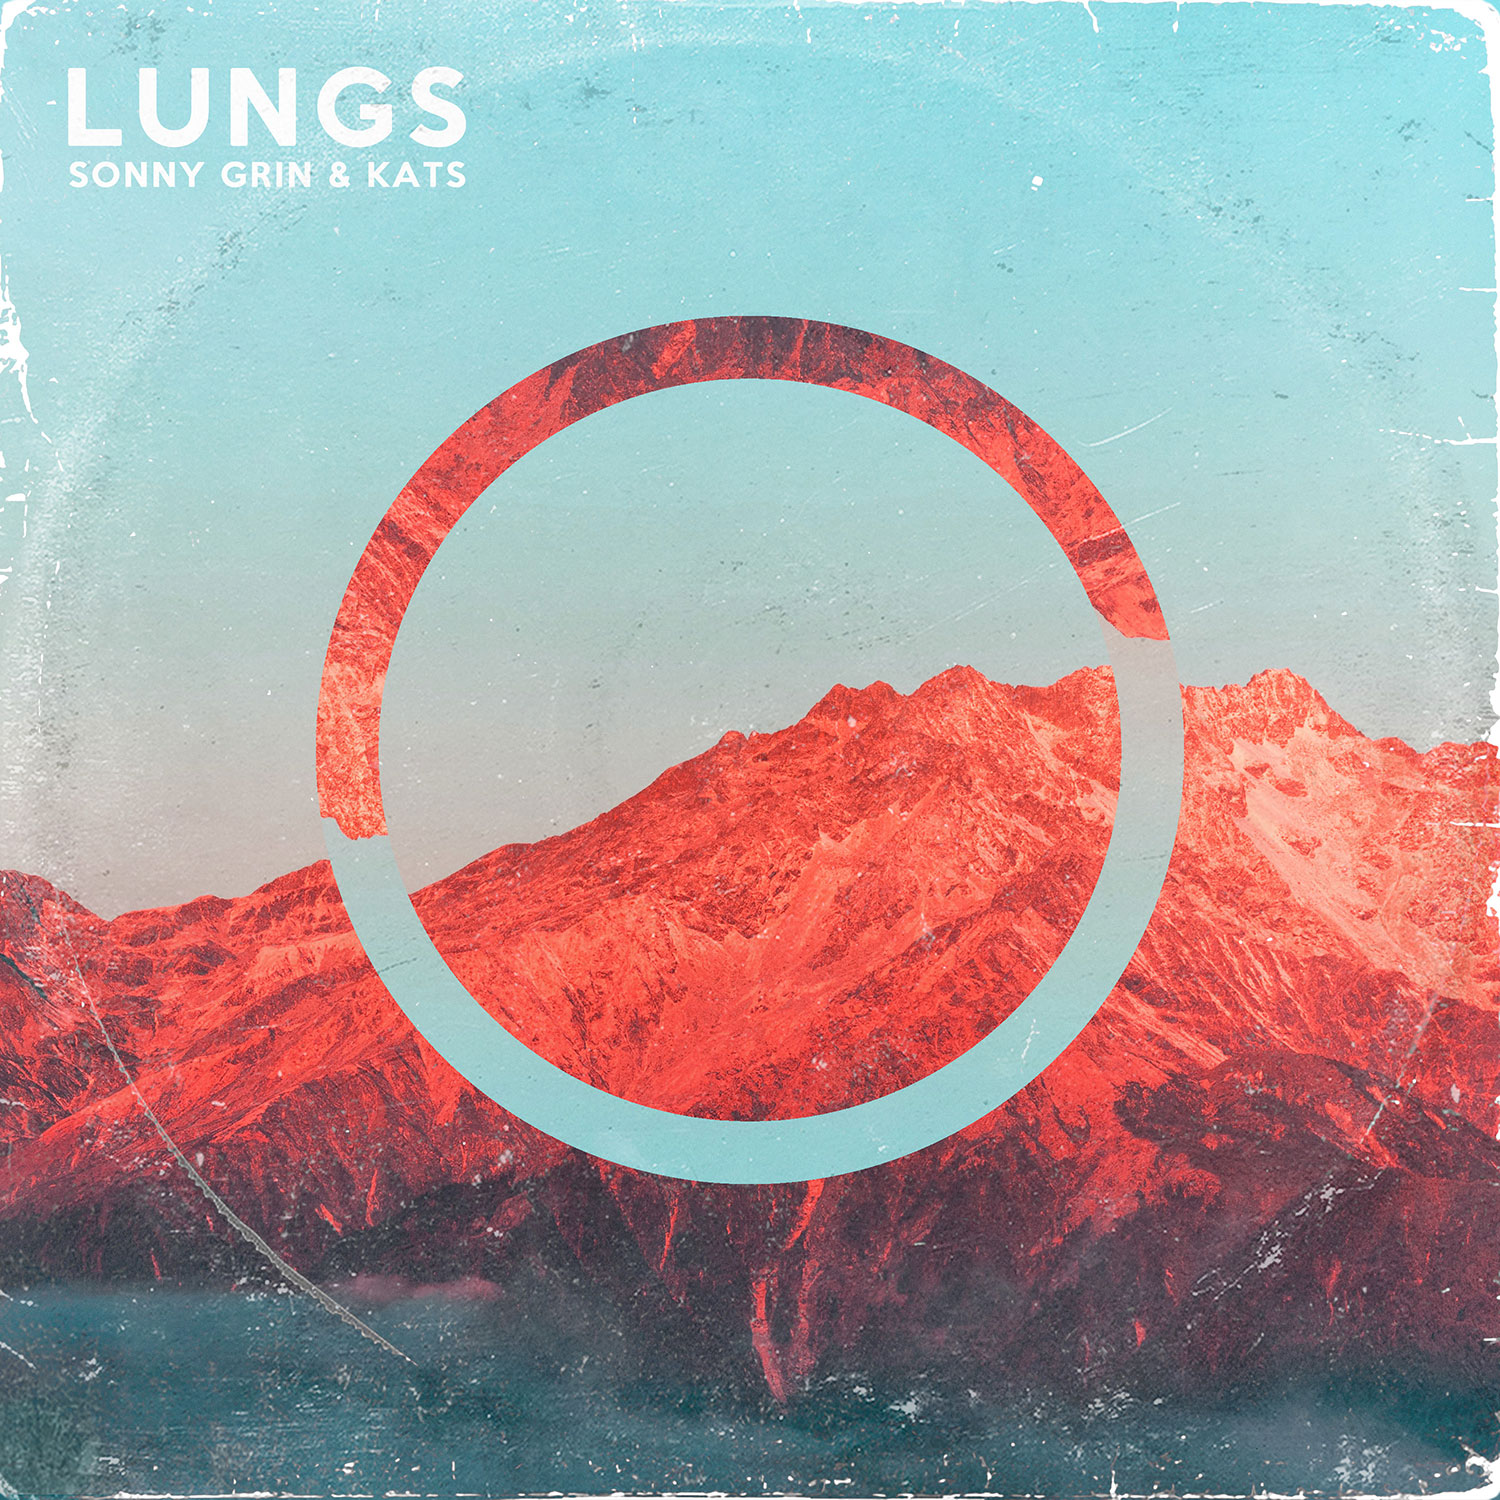 Lungs - Sonny Grin & Kats